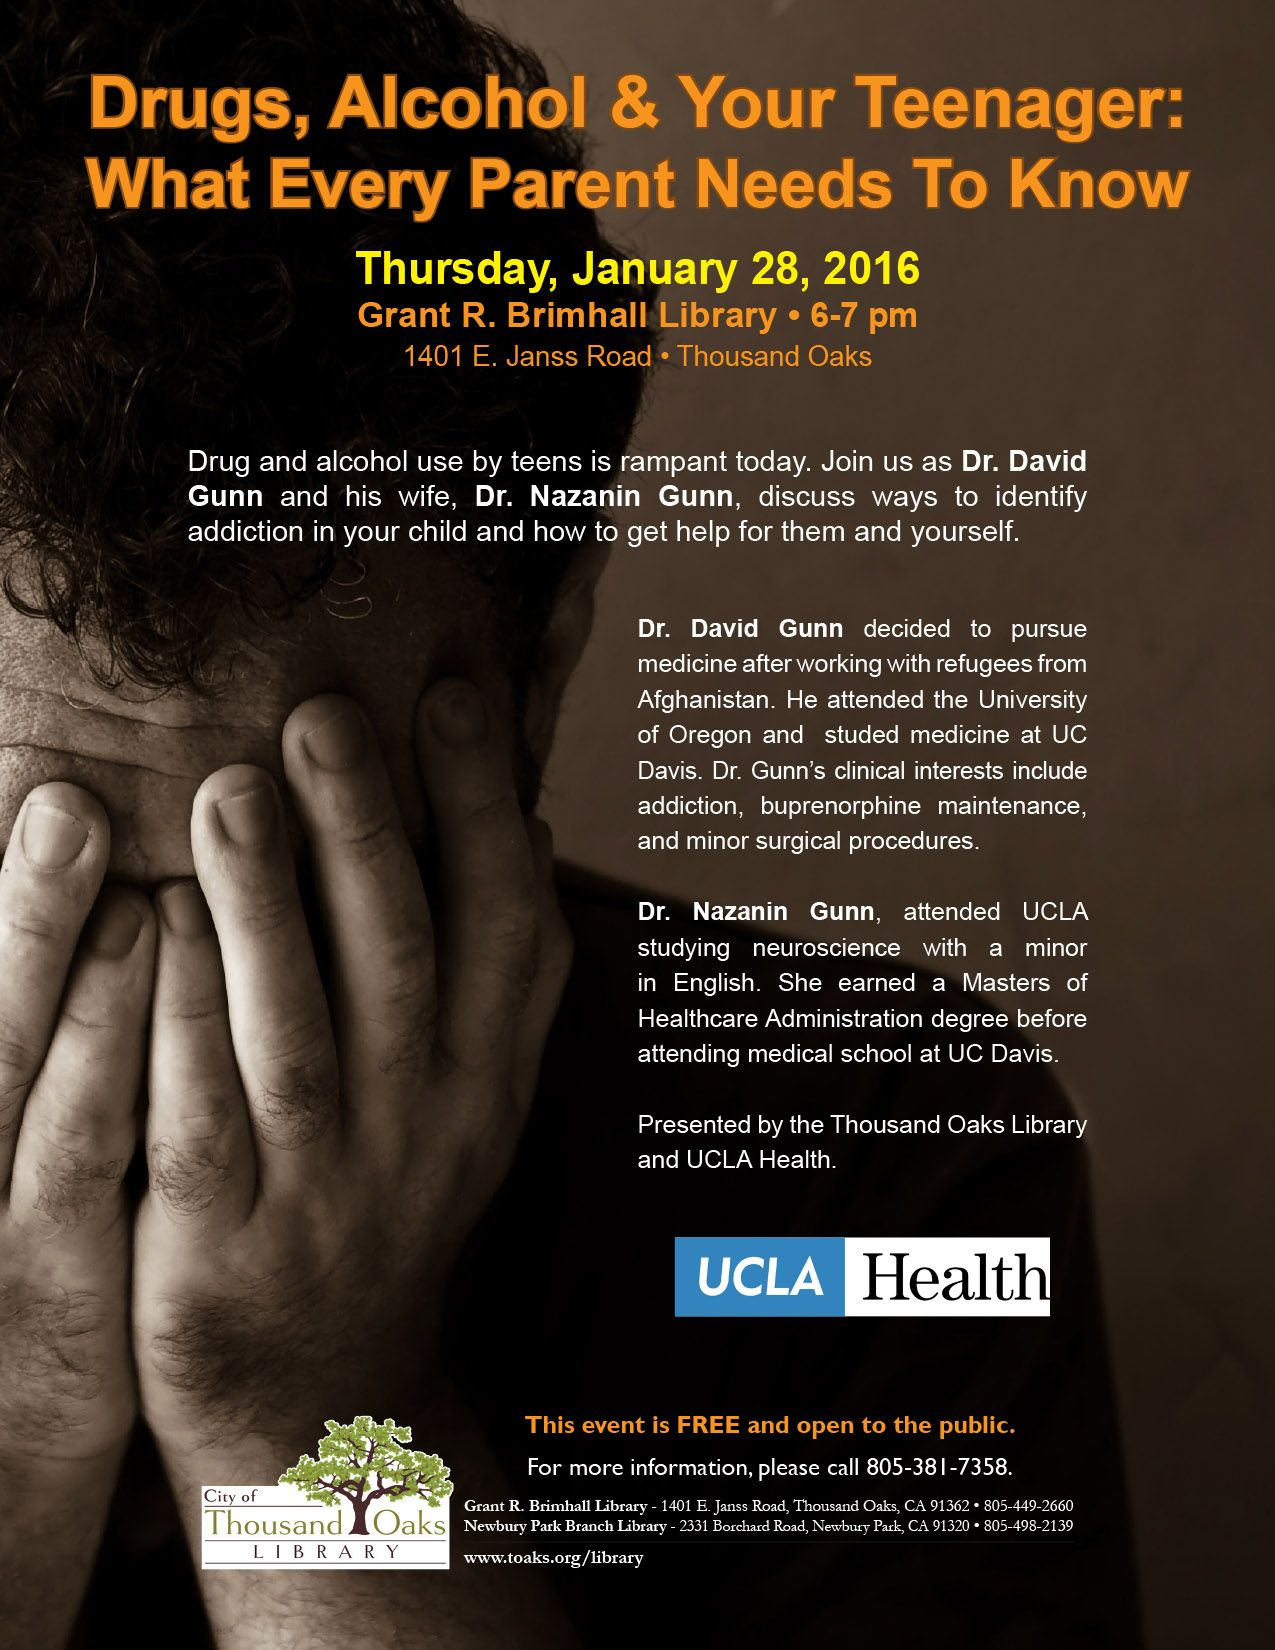 The Thousand Oaks Library and UCLA Health Care present